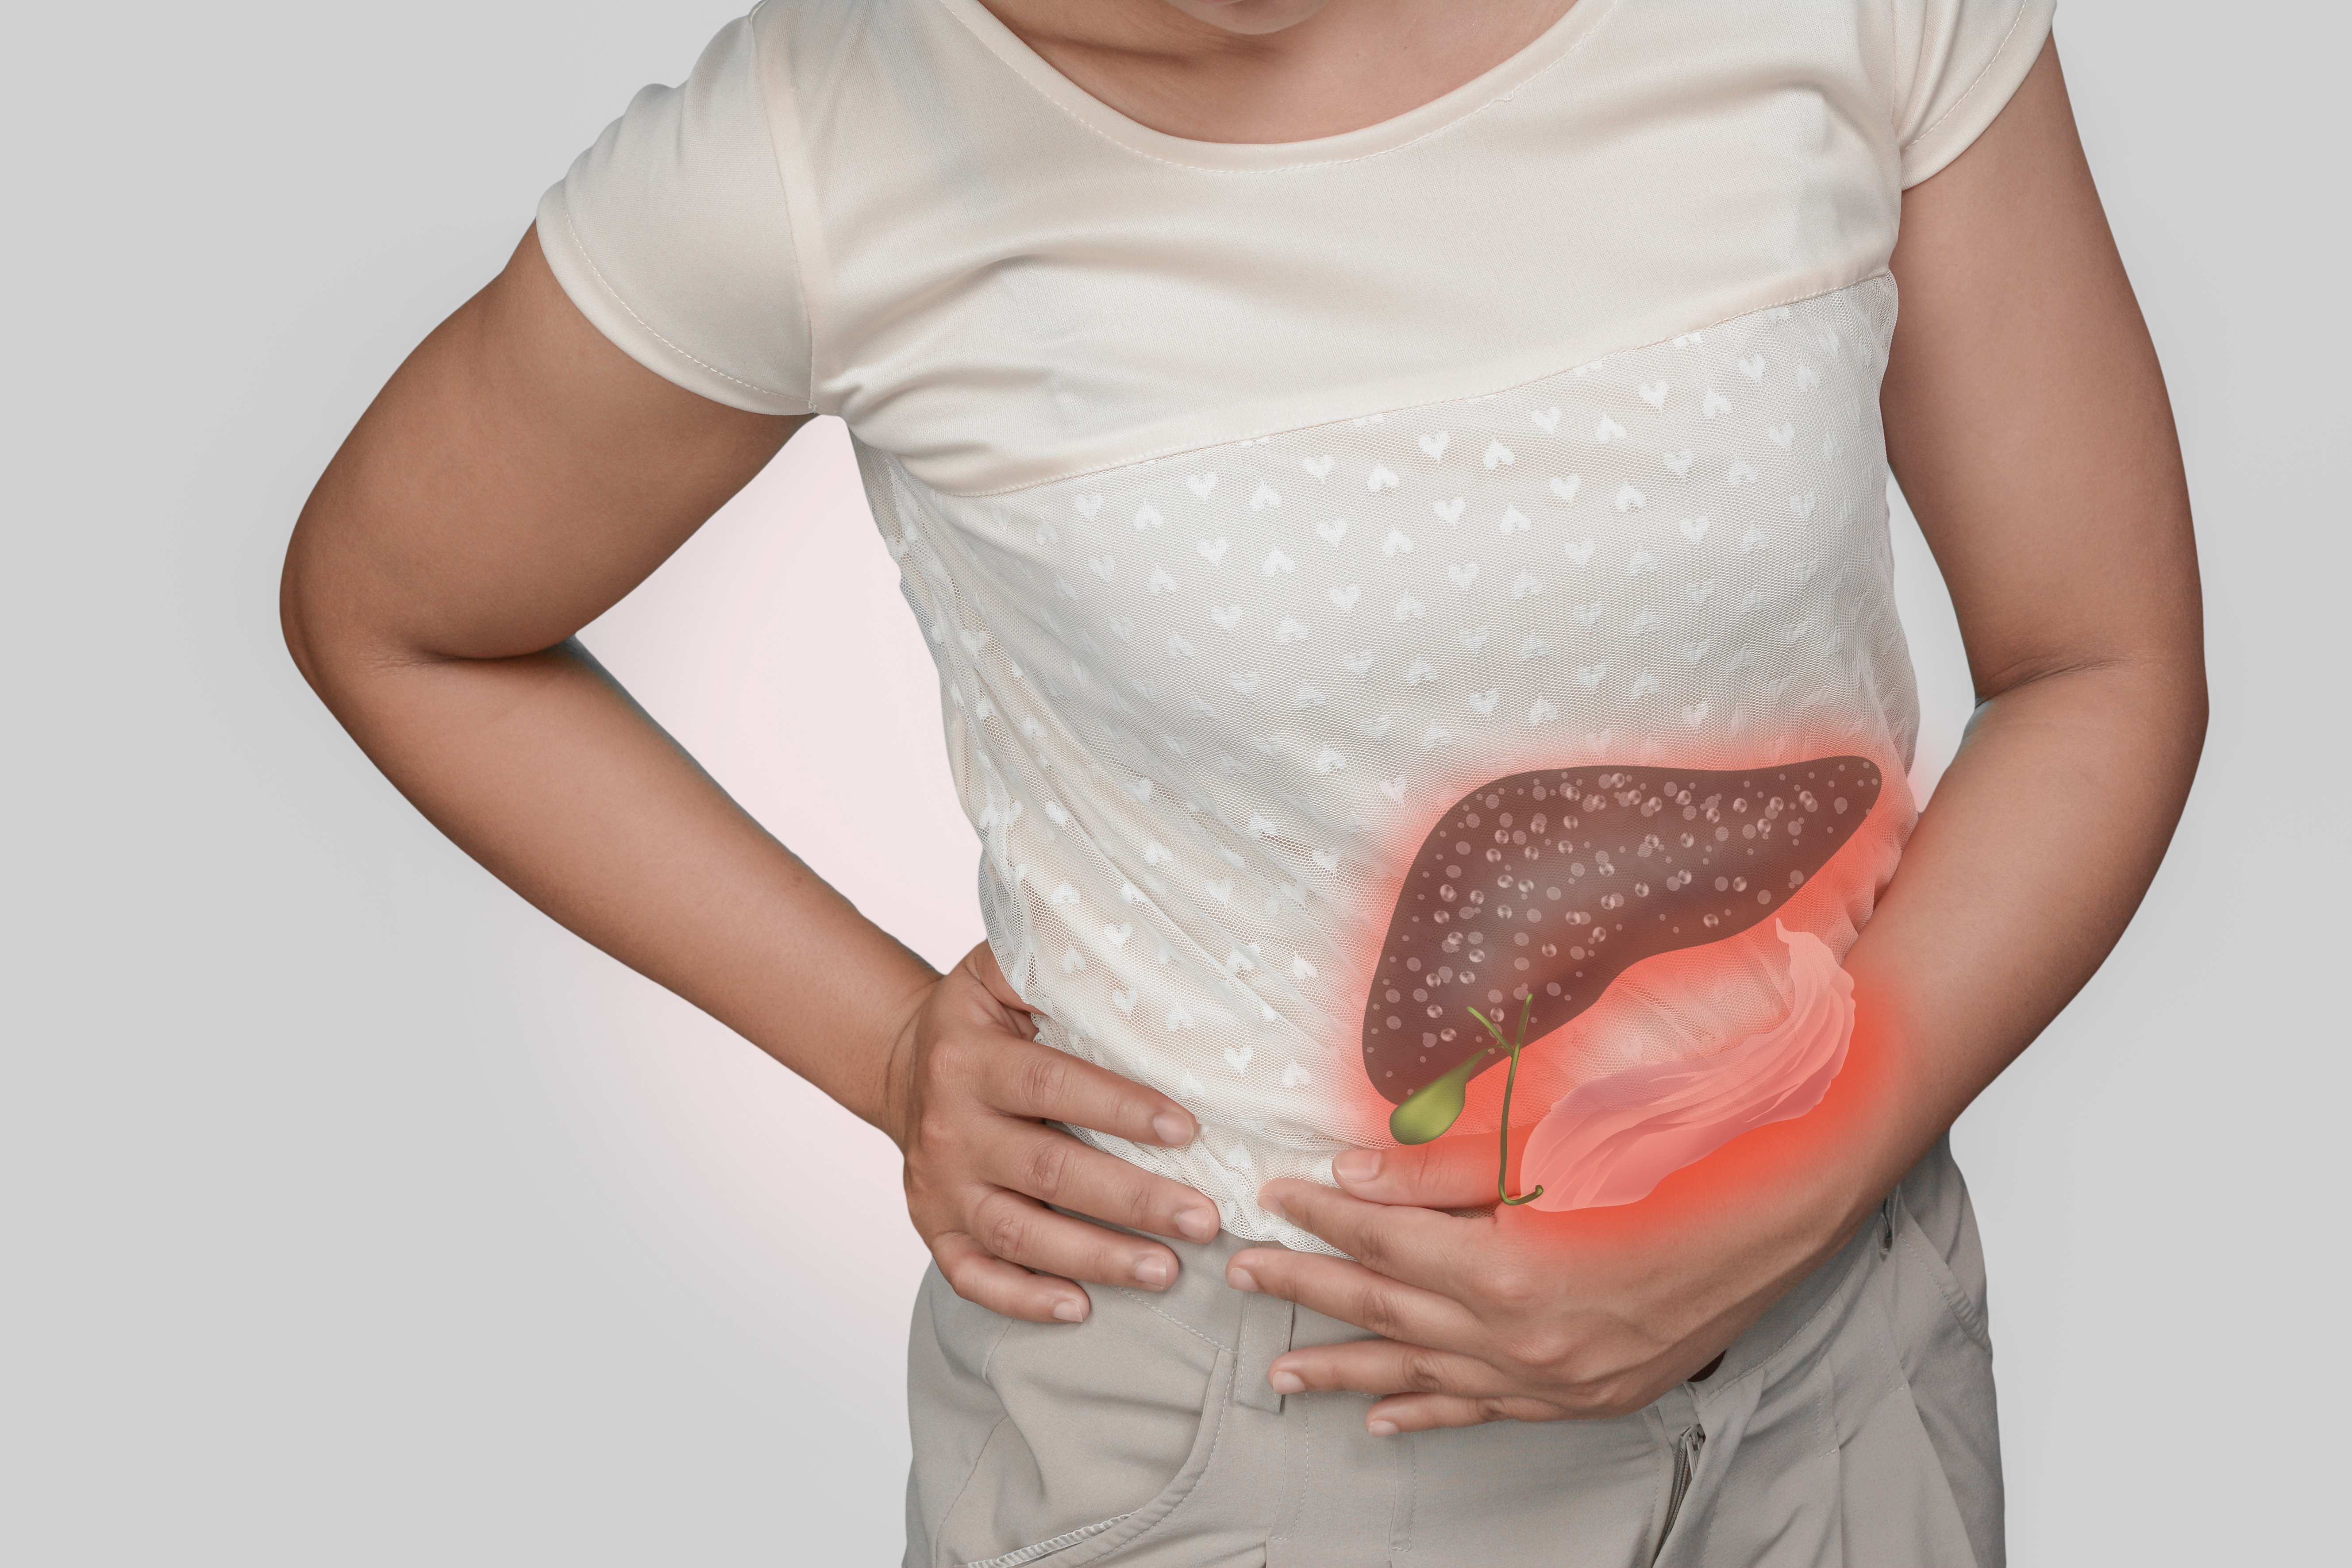 Obesity Treatment Management: Approach Considerations, Patient